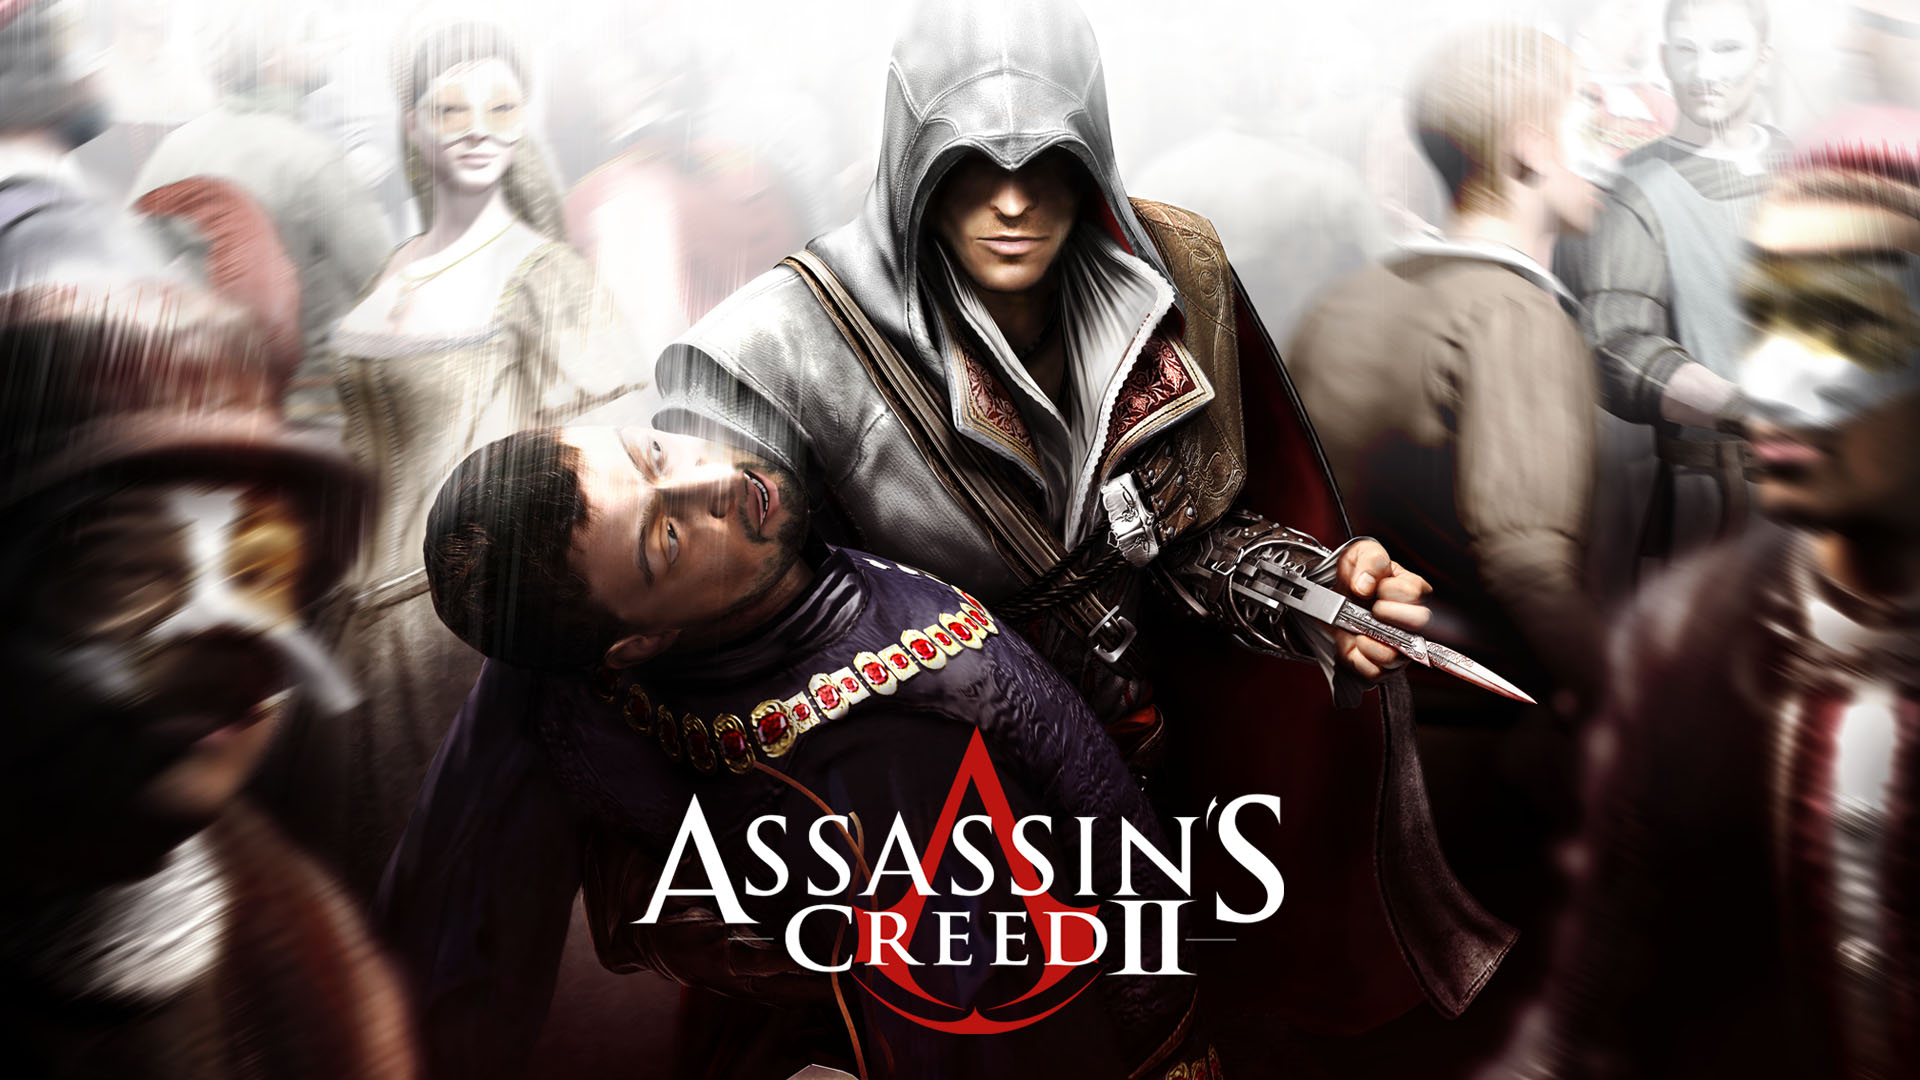 Assassin's Creed II - Death in the Crowd Wallpapers